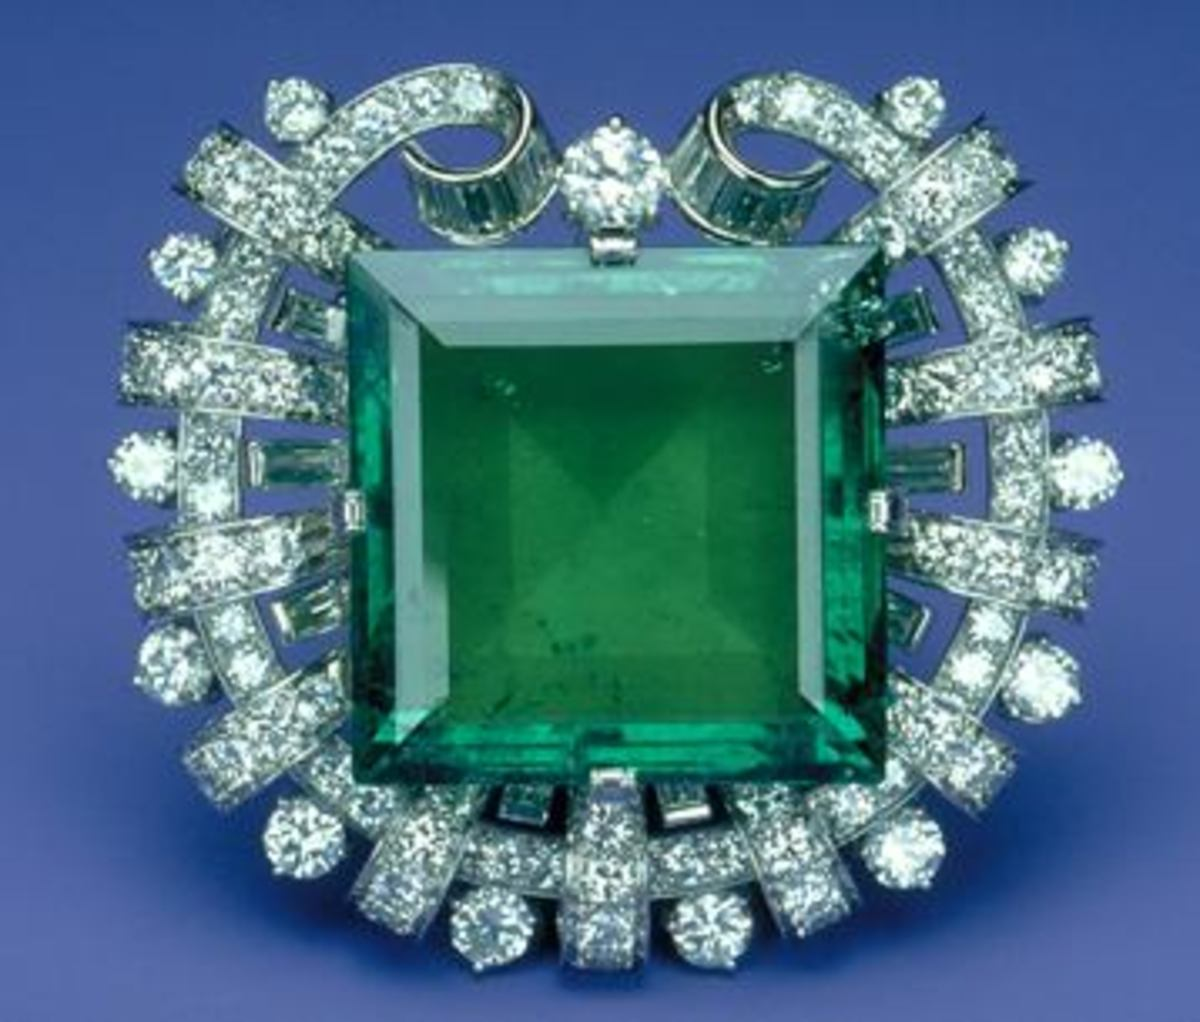 1950 platinum brooch by Tiffany and Co. with 75.47 carat Colombian emerald and 13 carats white diamonds.